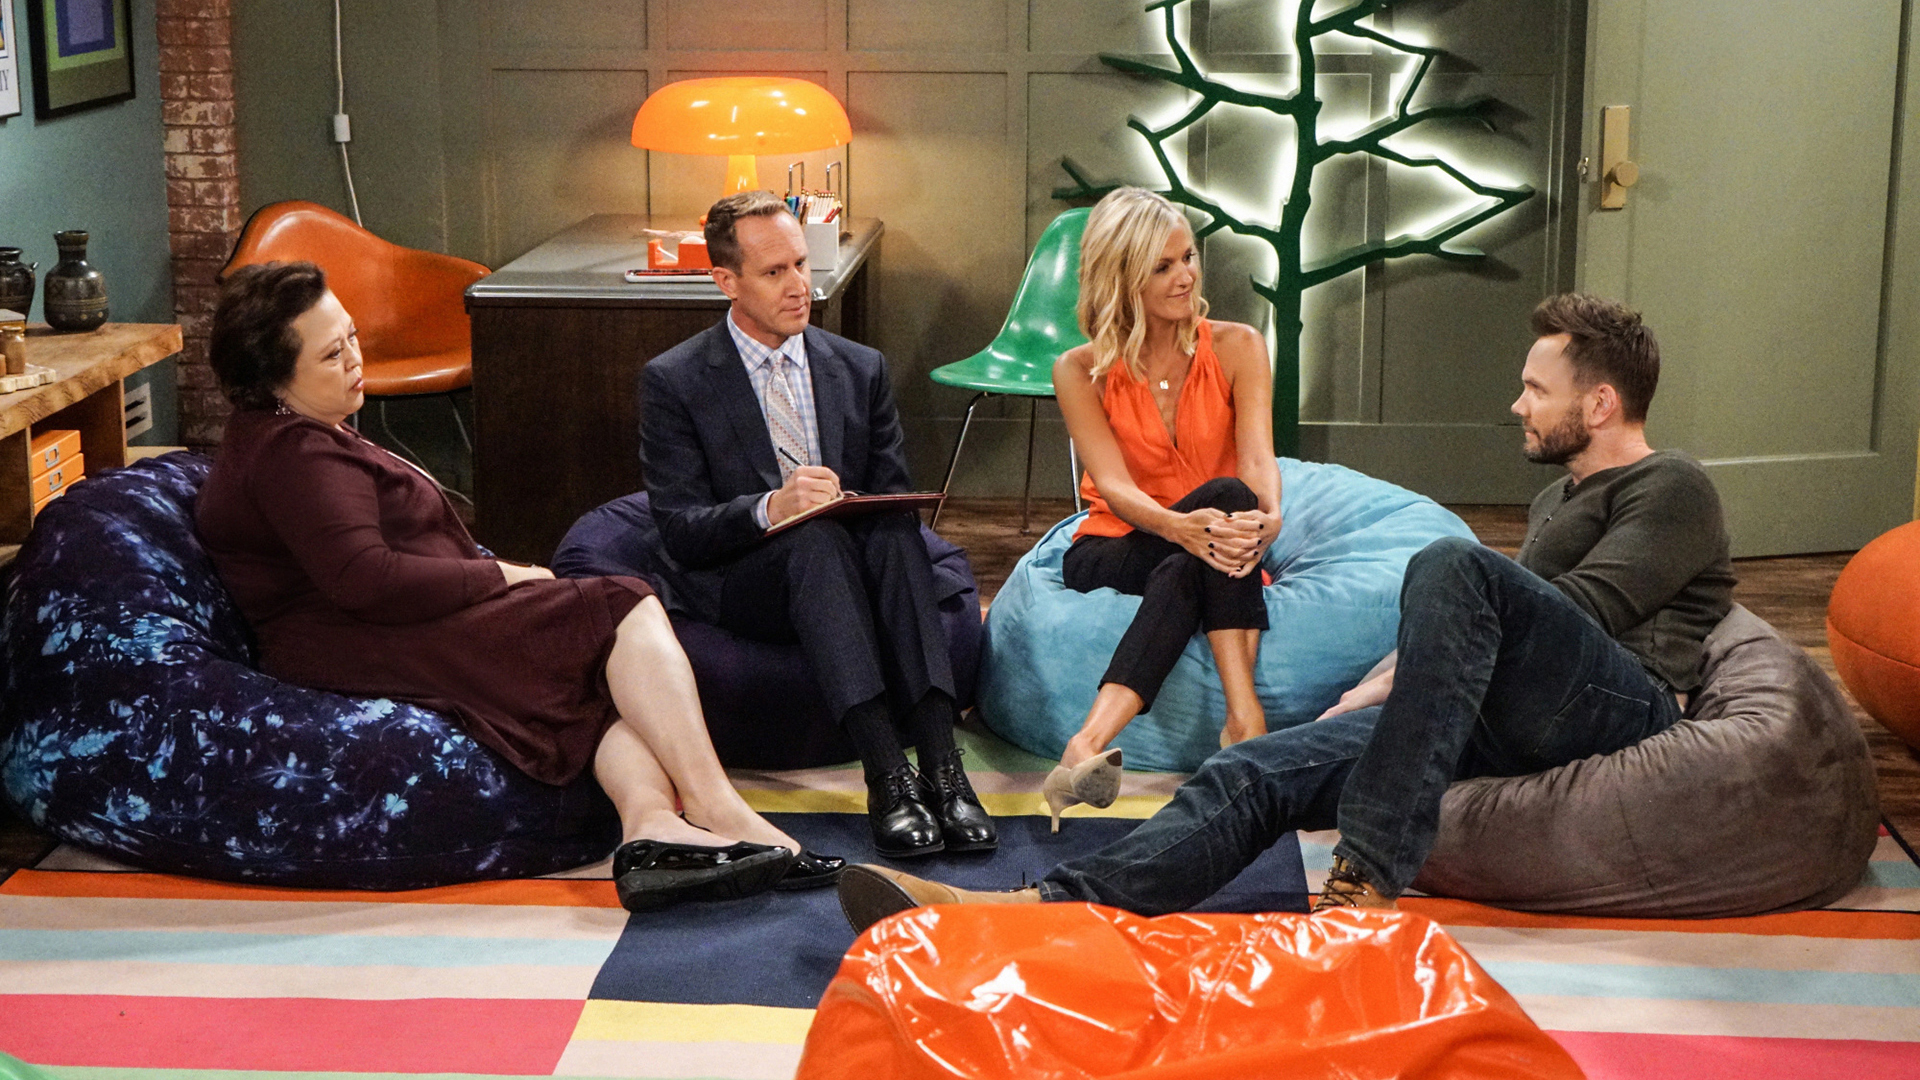 Jack gets a stern talking to... on bean bag chairs.